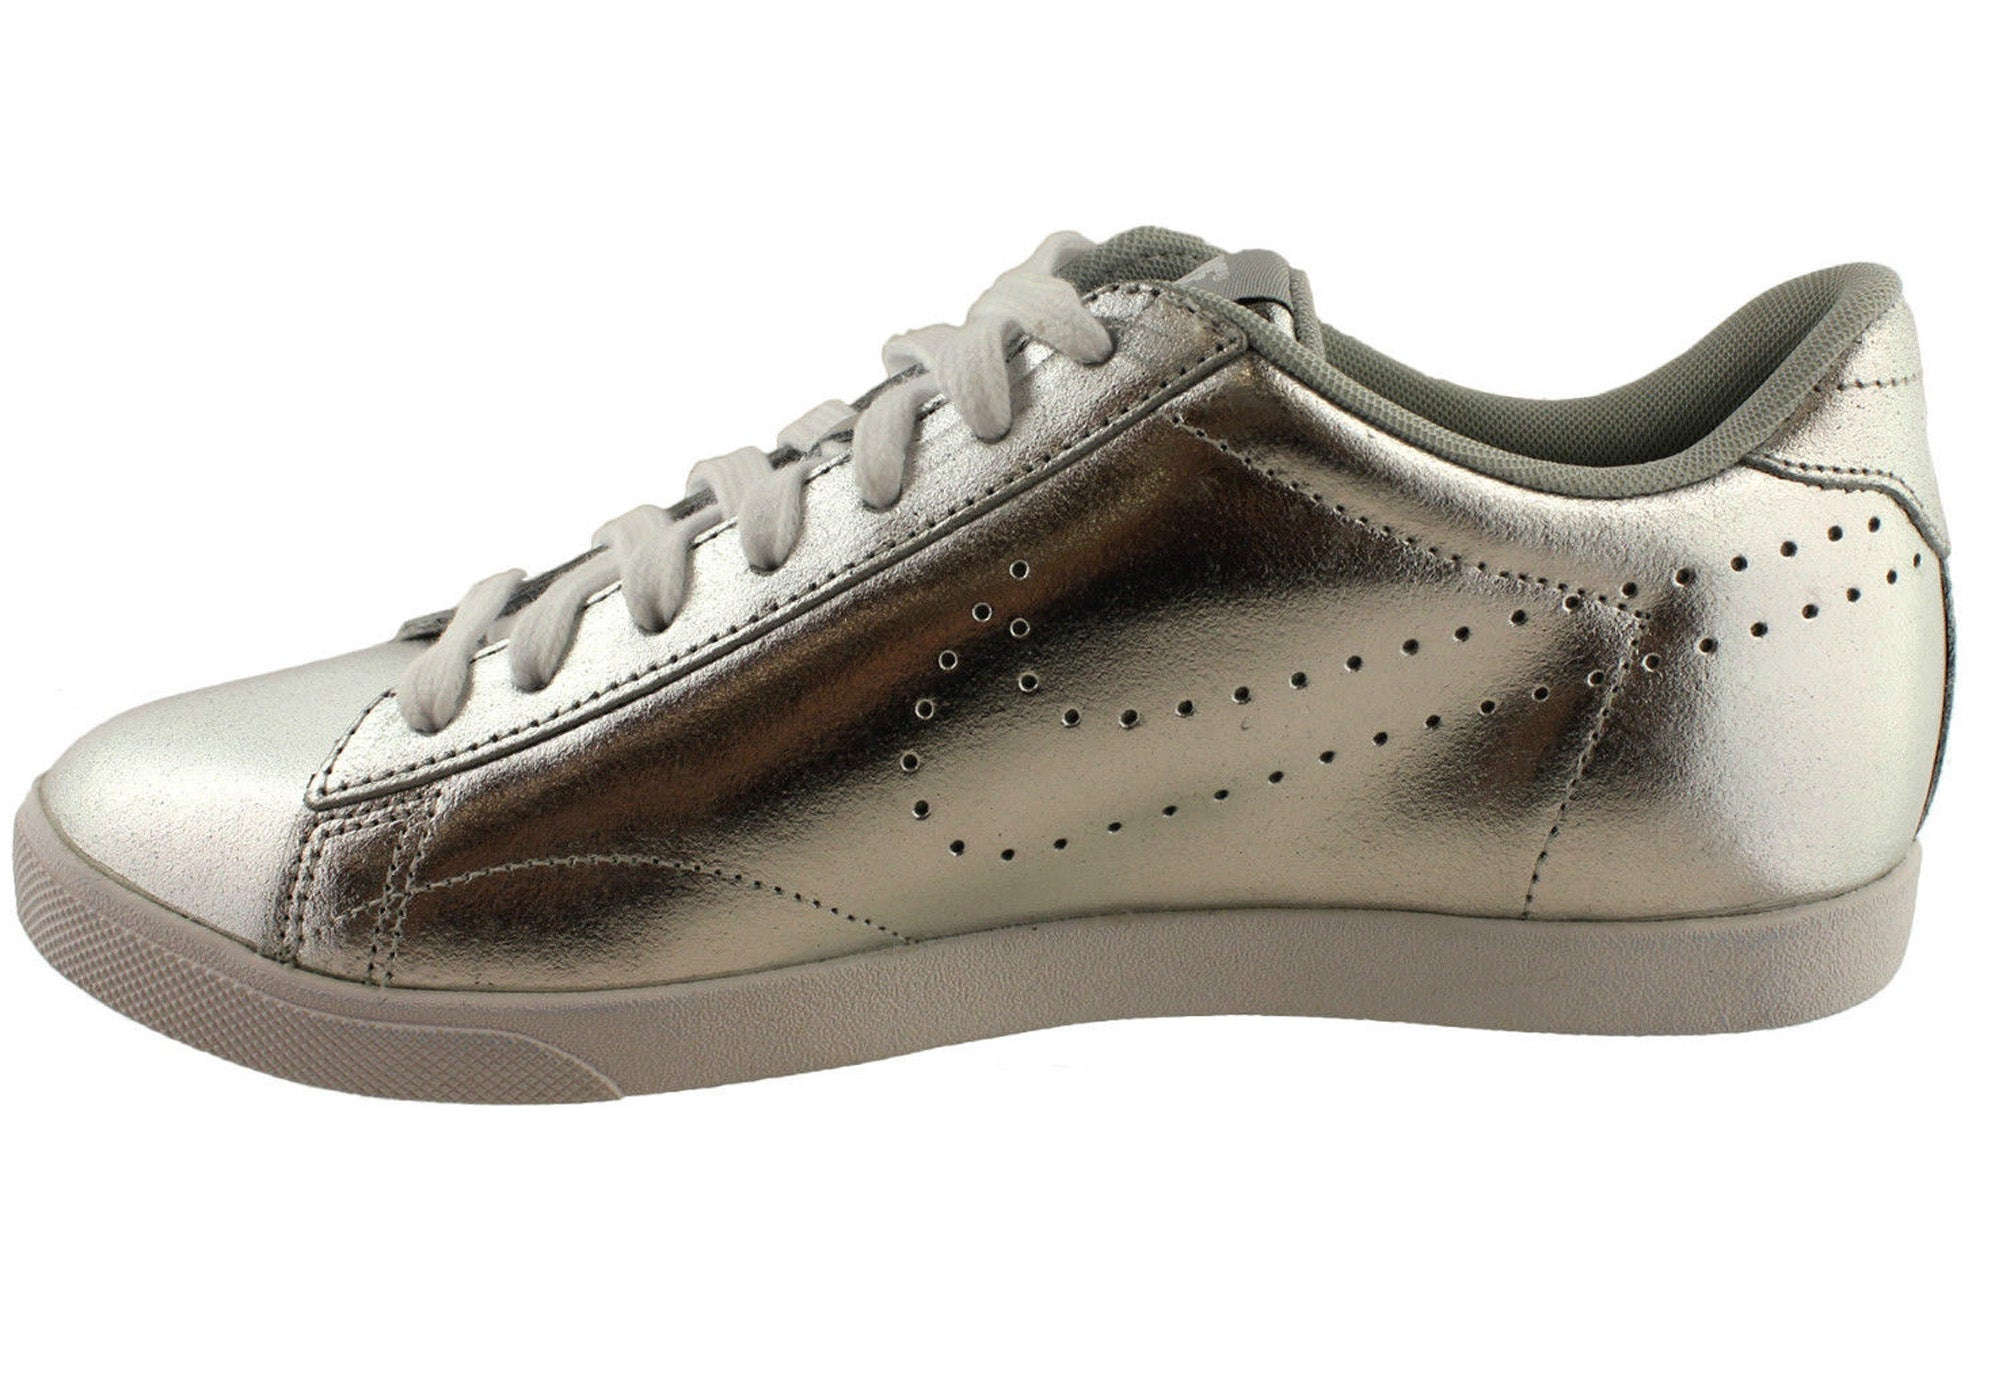 Nike Womens Racquette Leather Comfortable Lace Up Casual